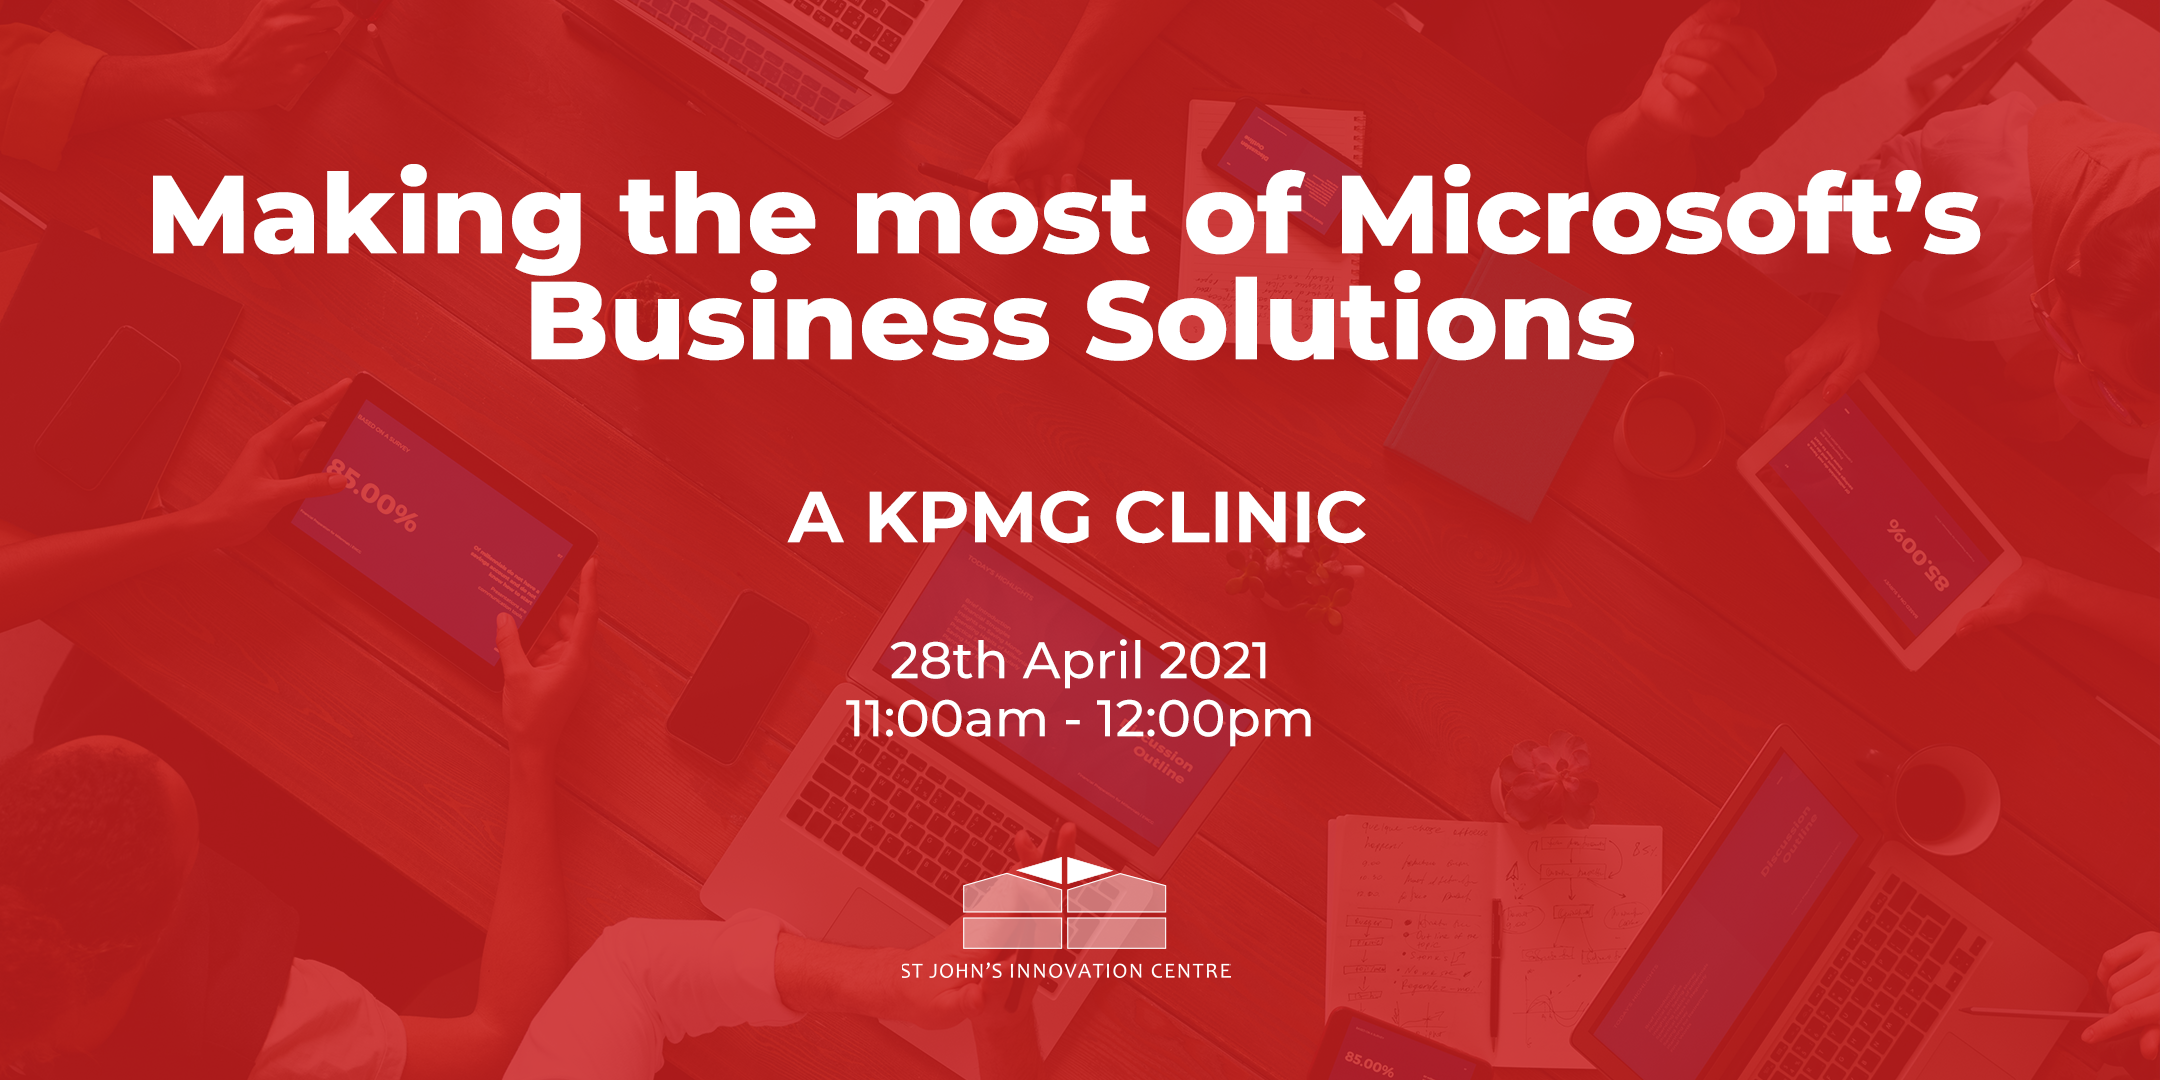 Making the most of Microsoft's Business Solutions: a KPMG clinic